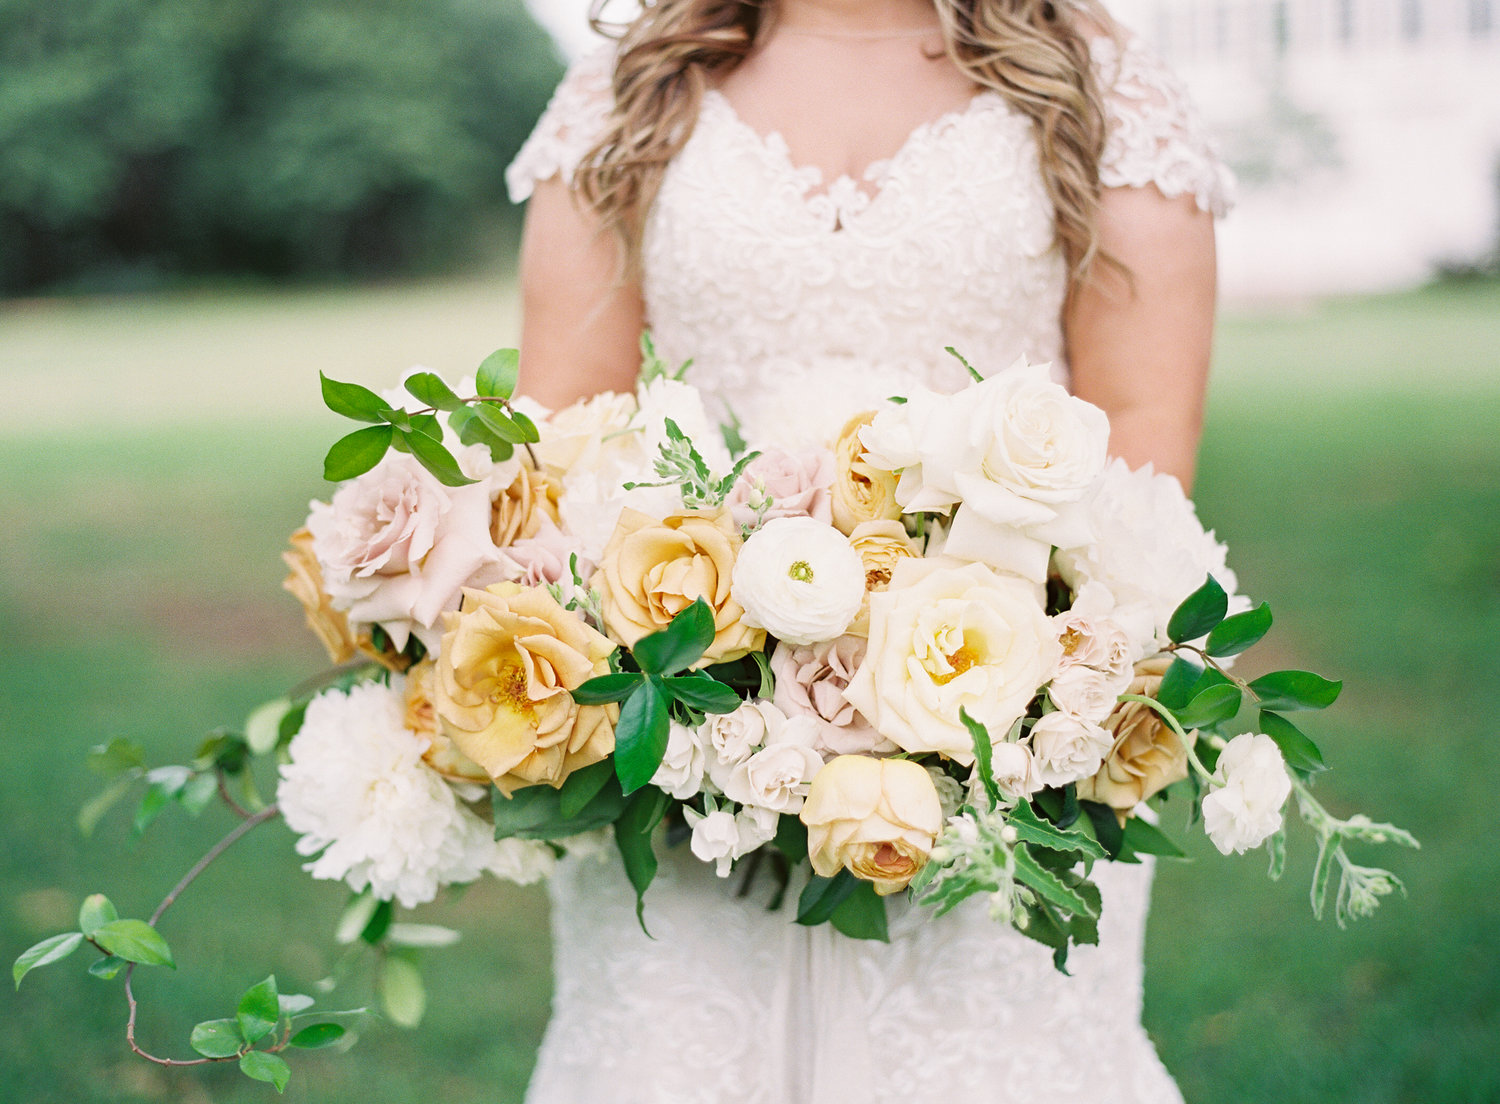 Blushington Blooms Dallas Fort Worth Wedding Florist Dallas Fort